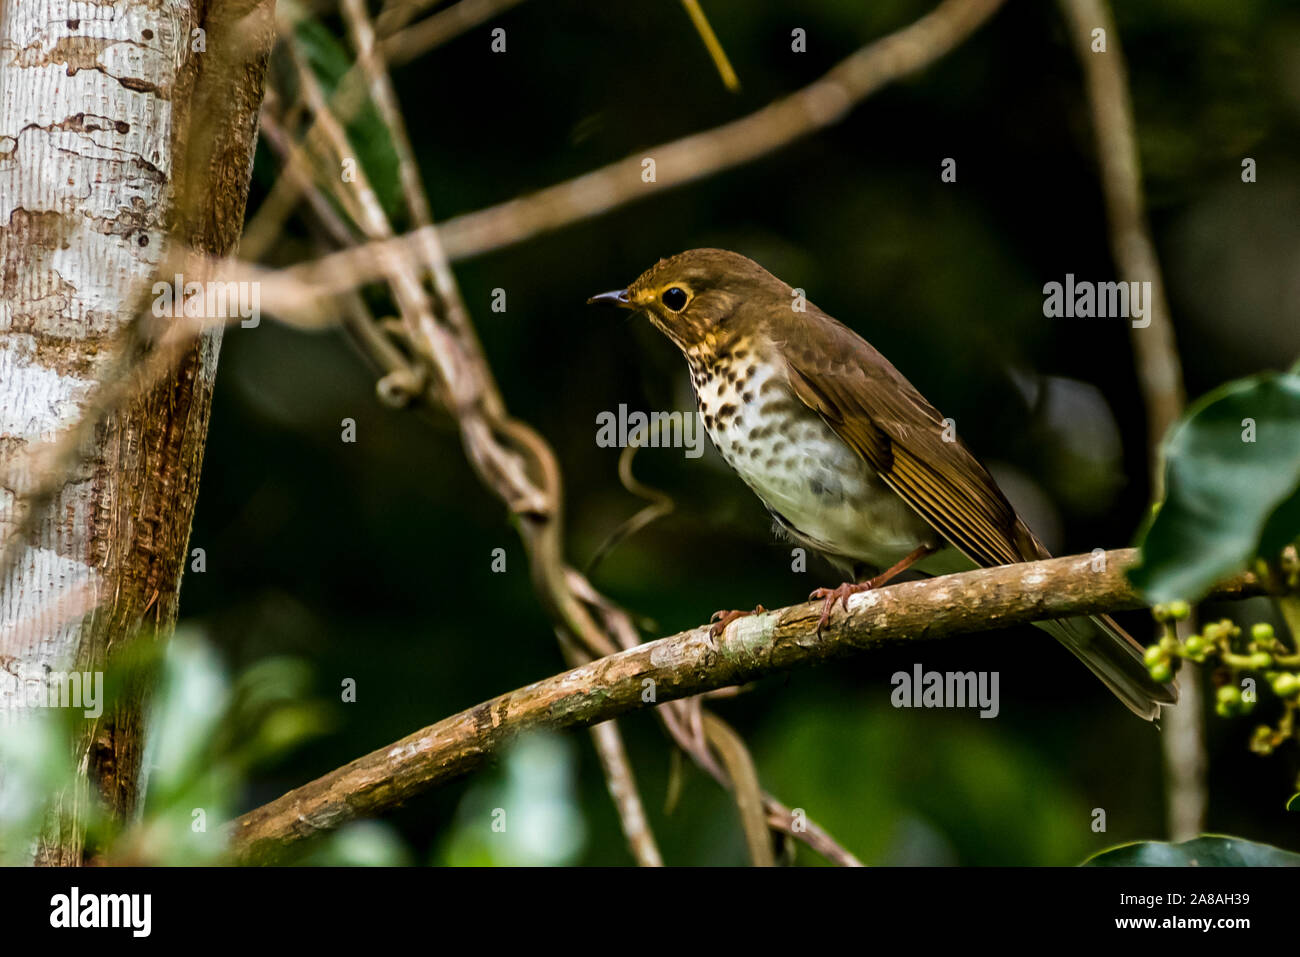 Swainson's thrush, also called olive-backed thrush Stock Photo